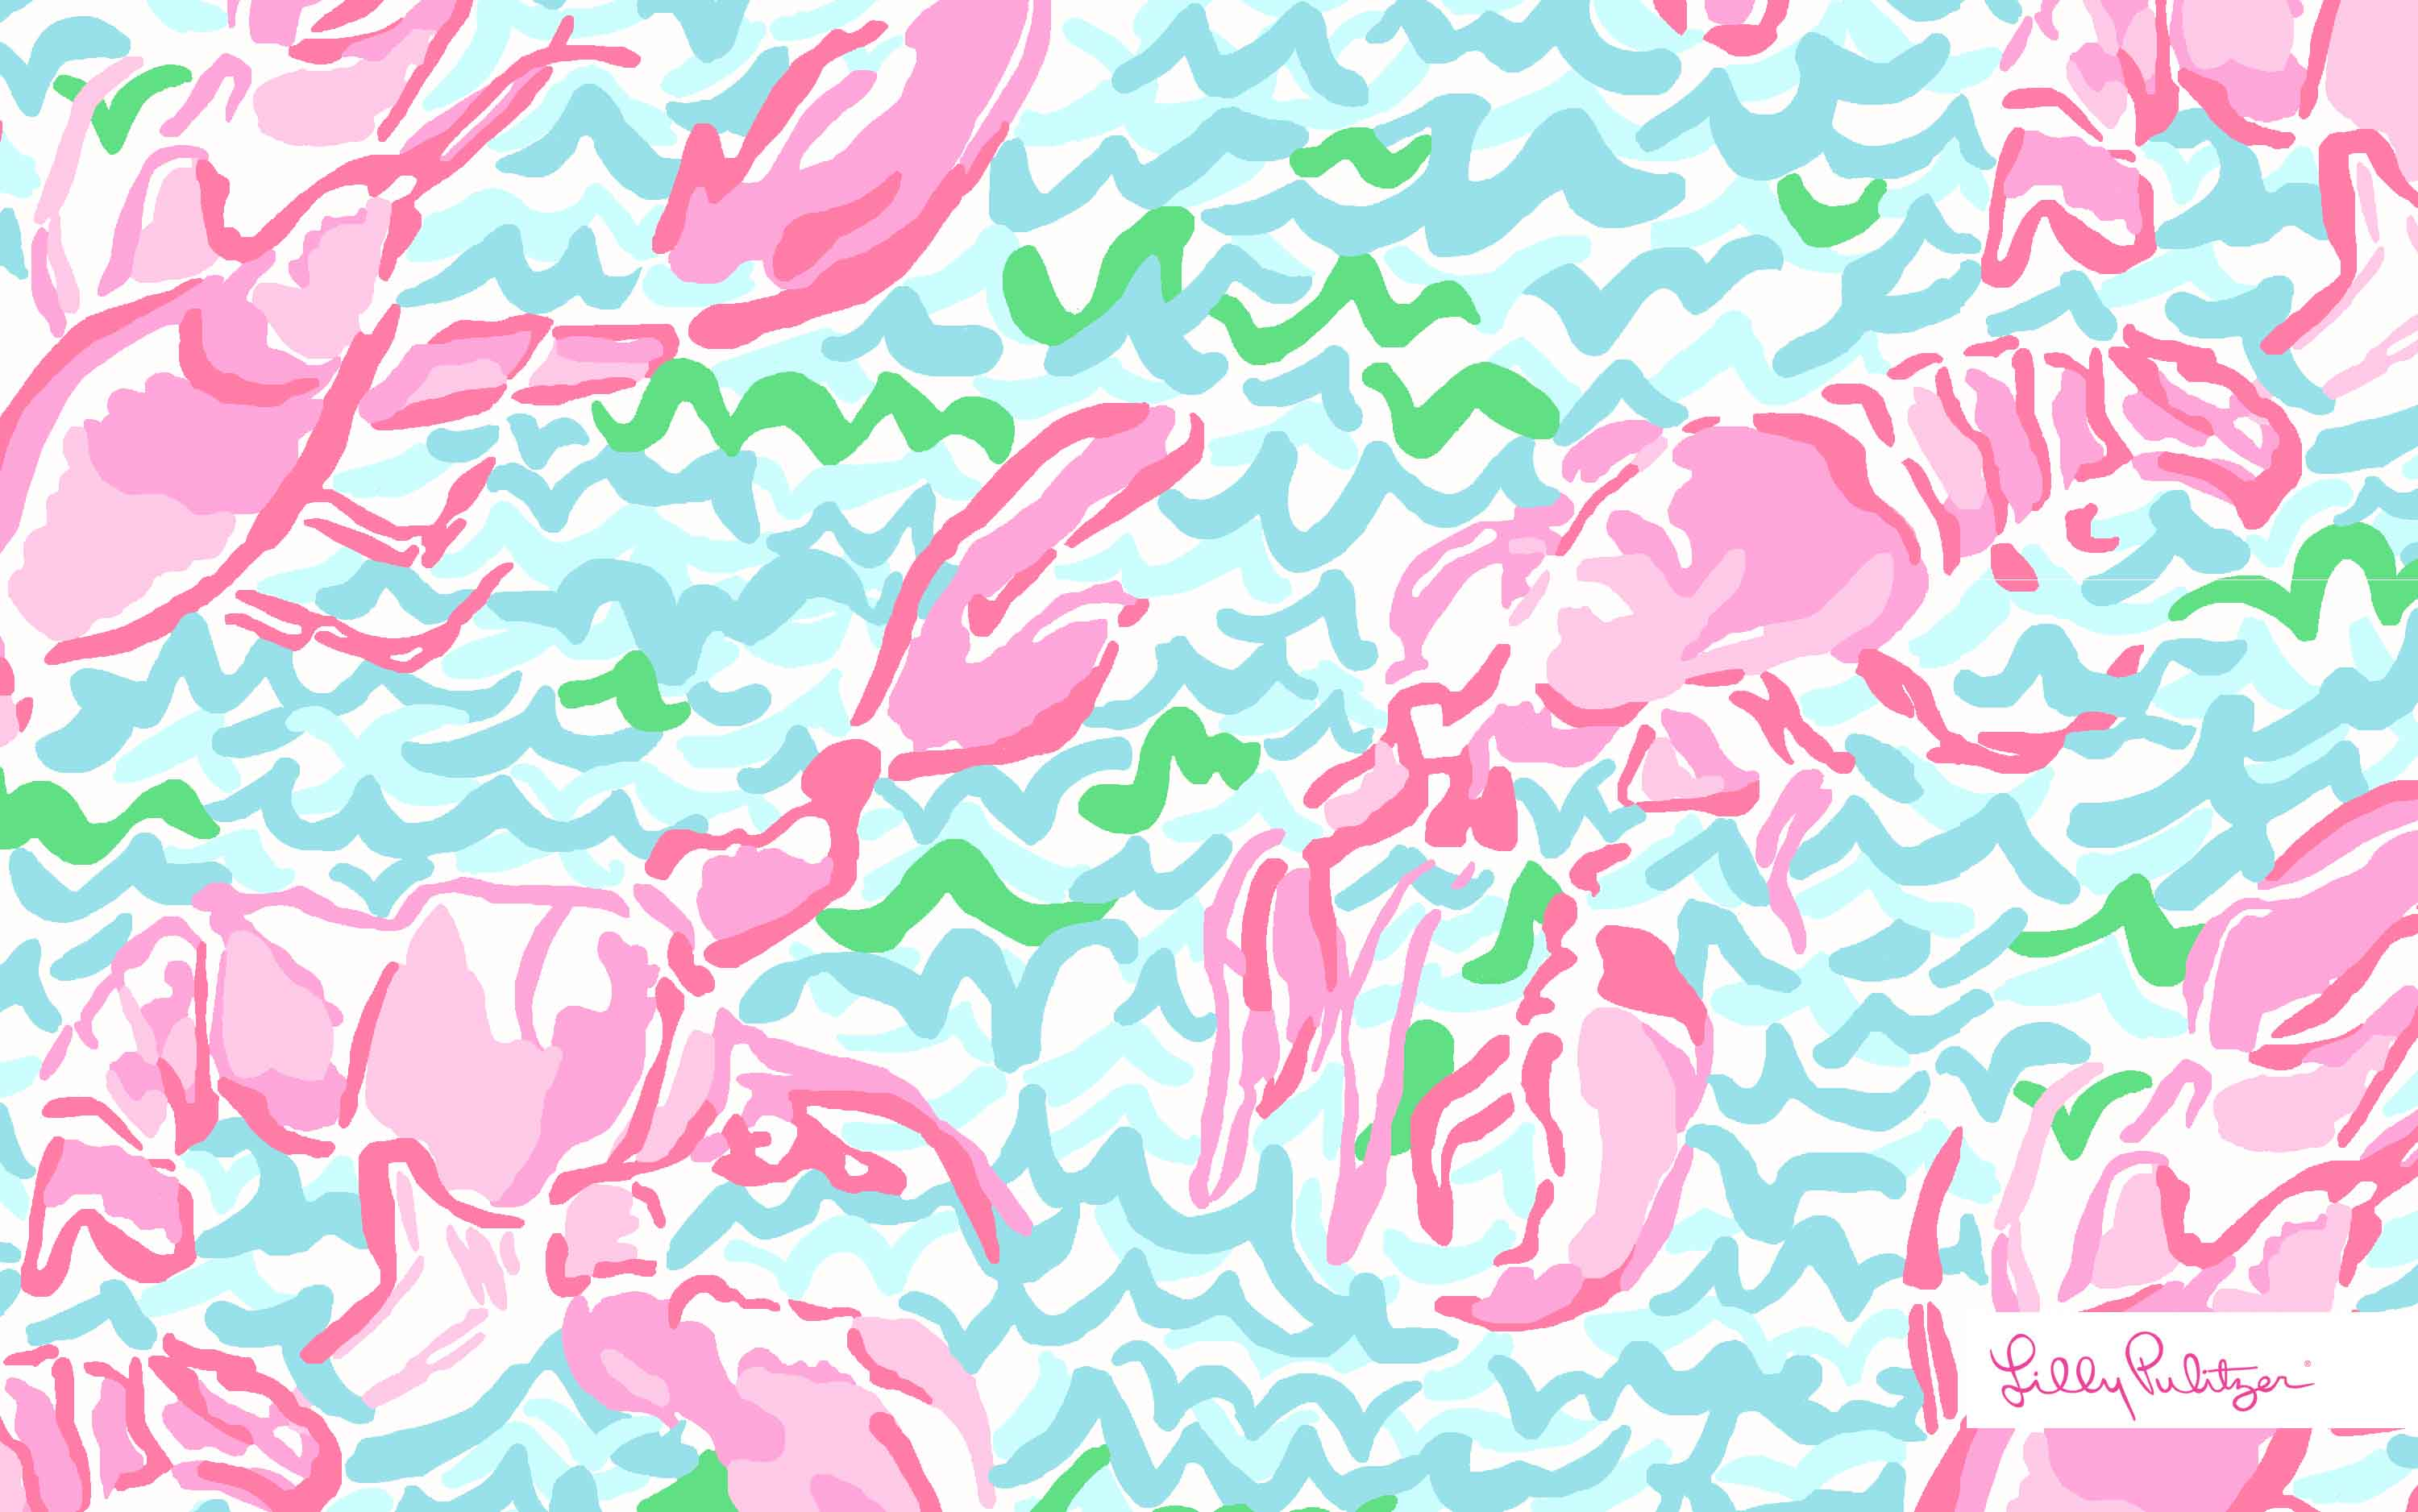 Lilly Pulitzer Backgrounds With Bible Verses   www.pixshark.com - Images Galleries With A Bite!